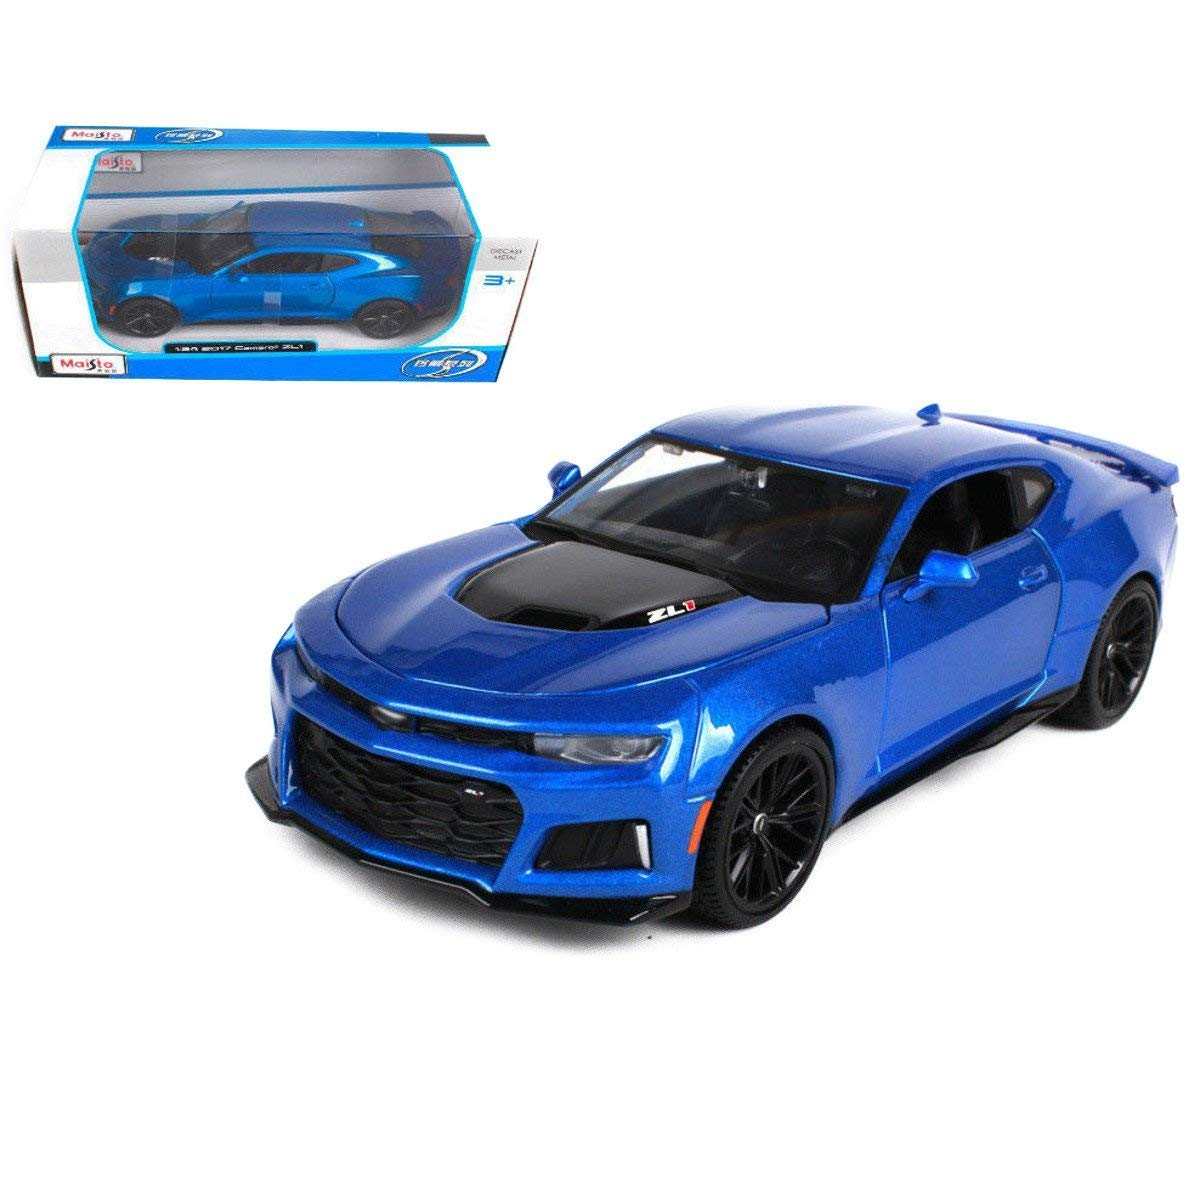 Special Edition Collection New 1 24 W B SPECIAL EDITION Blue 2017 Chevrolet Camaro ZL1 Diecast Model Car By Maisto